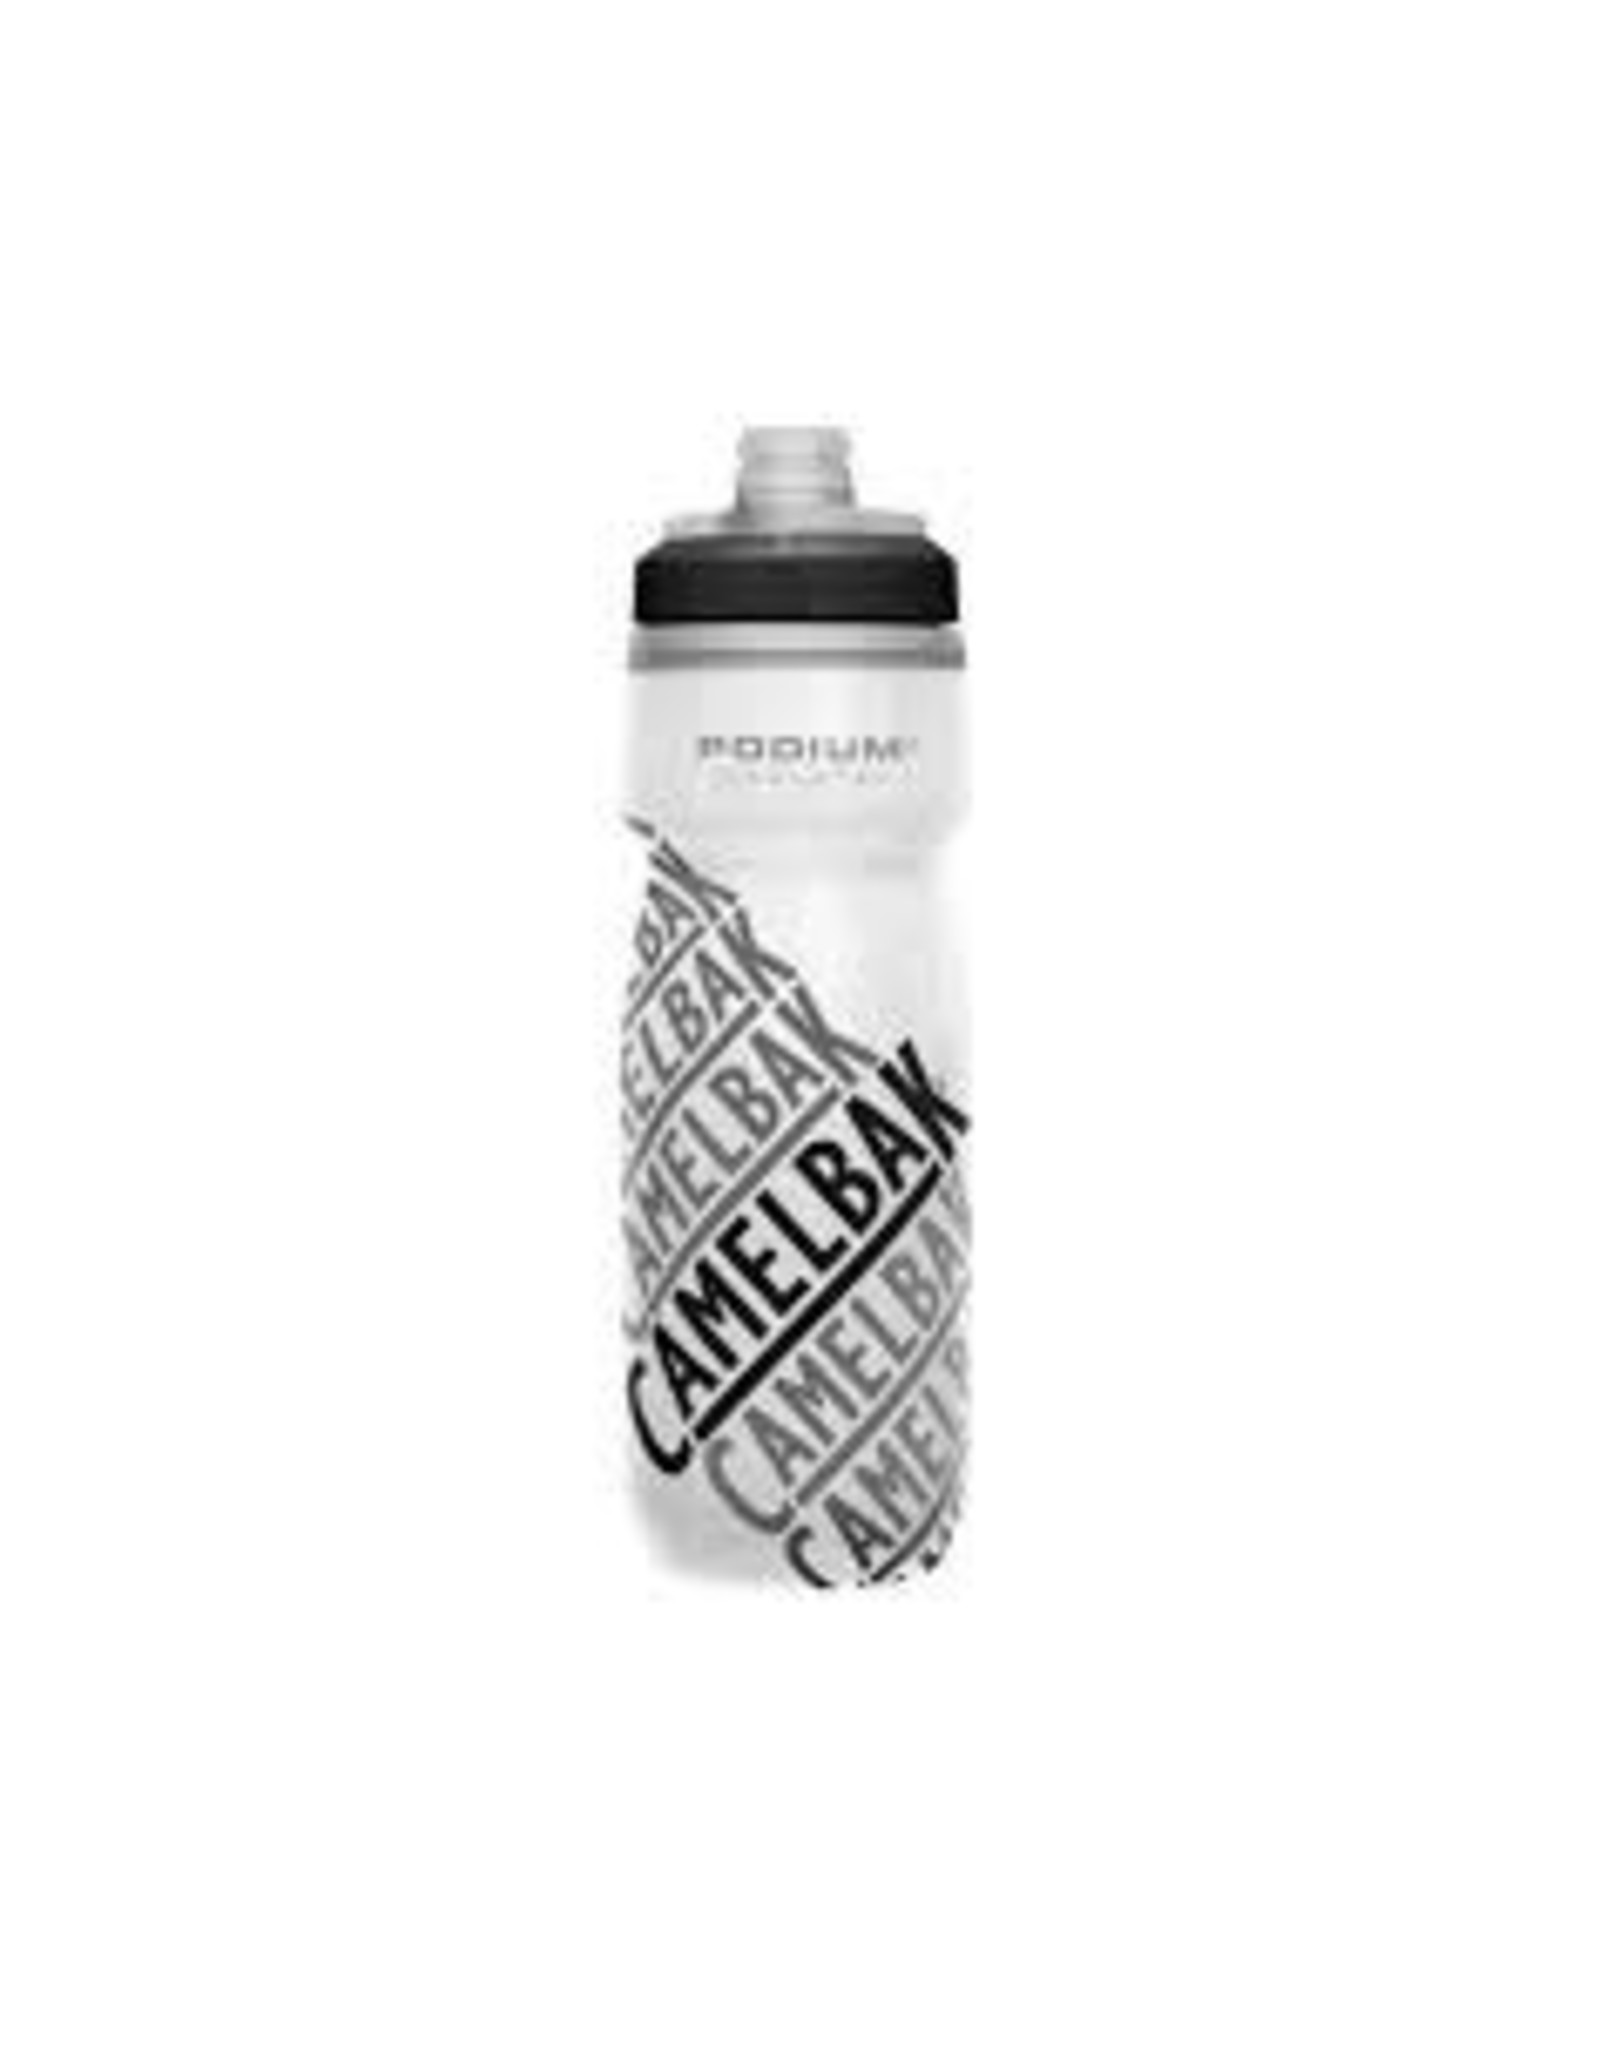 Bottle Camelbak Podium Chill 21oz, Race Edition